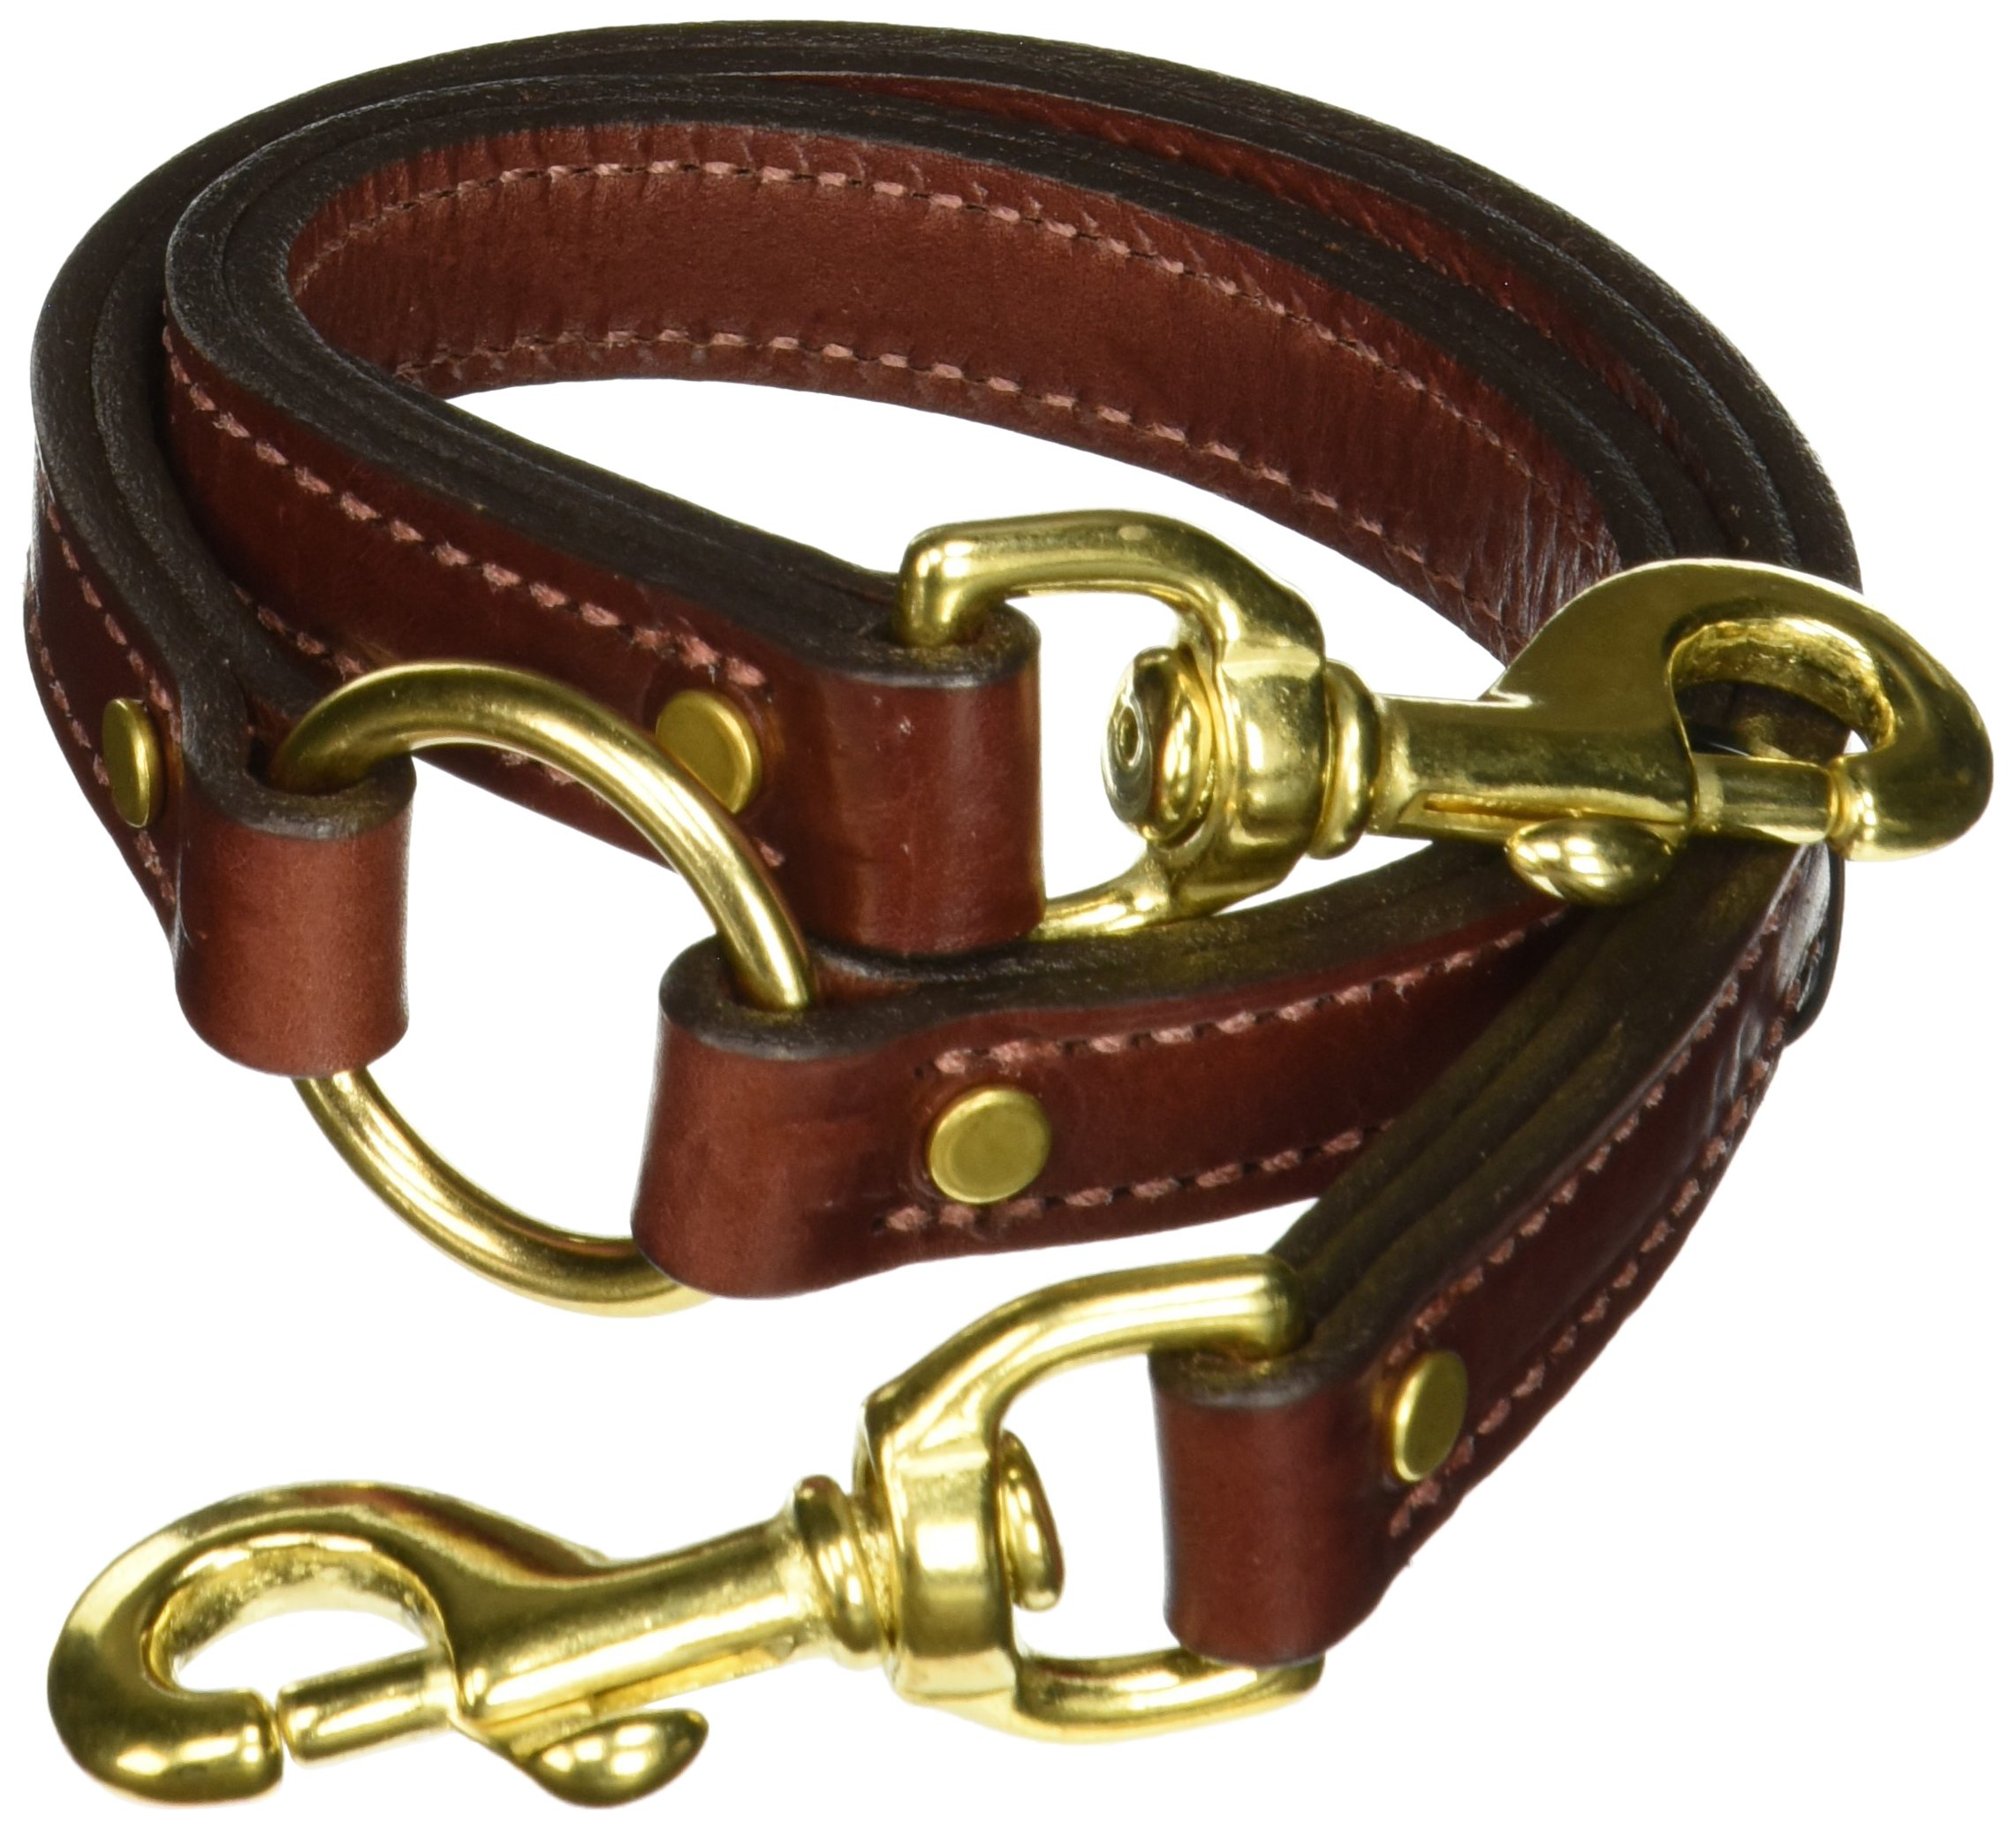 Mendota Products 10825 Pet Leather Two Dog Coupler Leash, 3/4'' x 25'', Chestnut